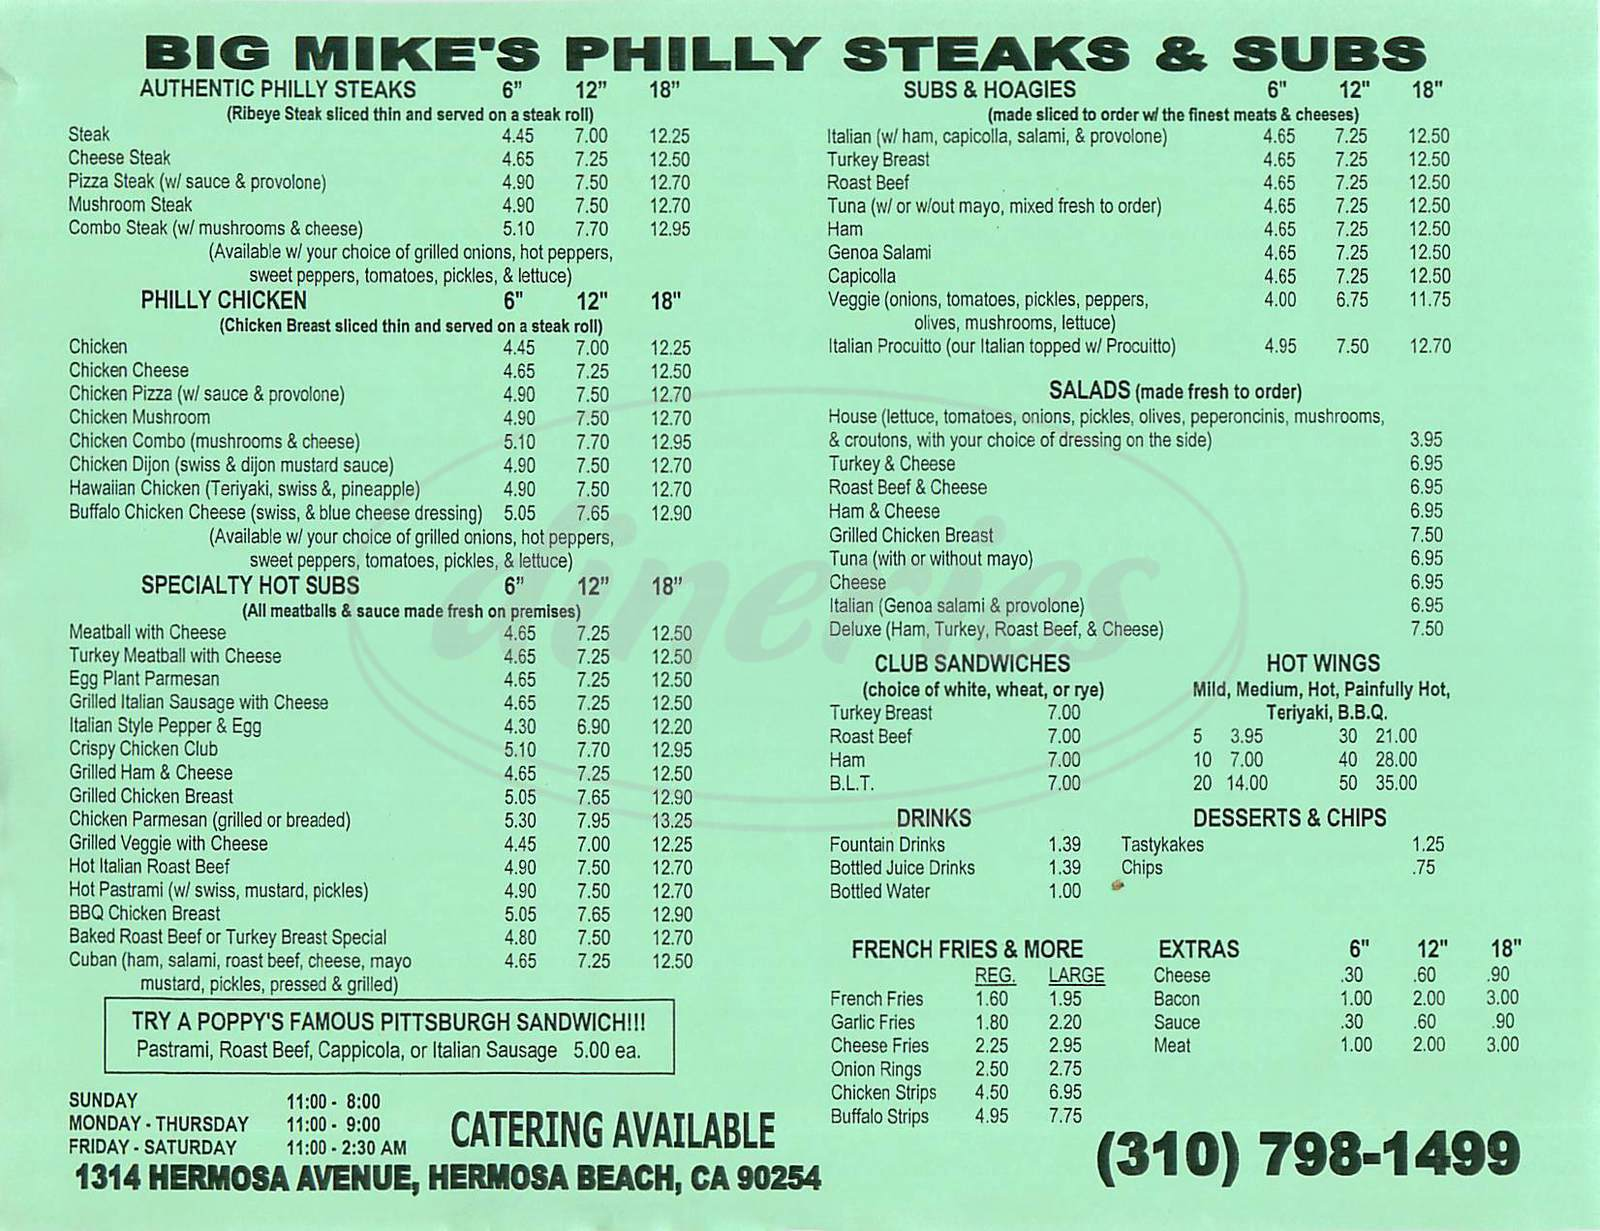 menu for Big Mikes Philly Steaks & Subs